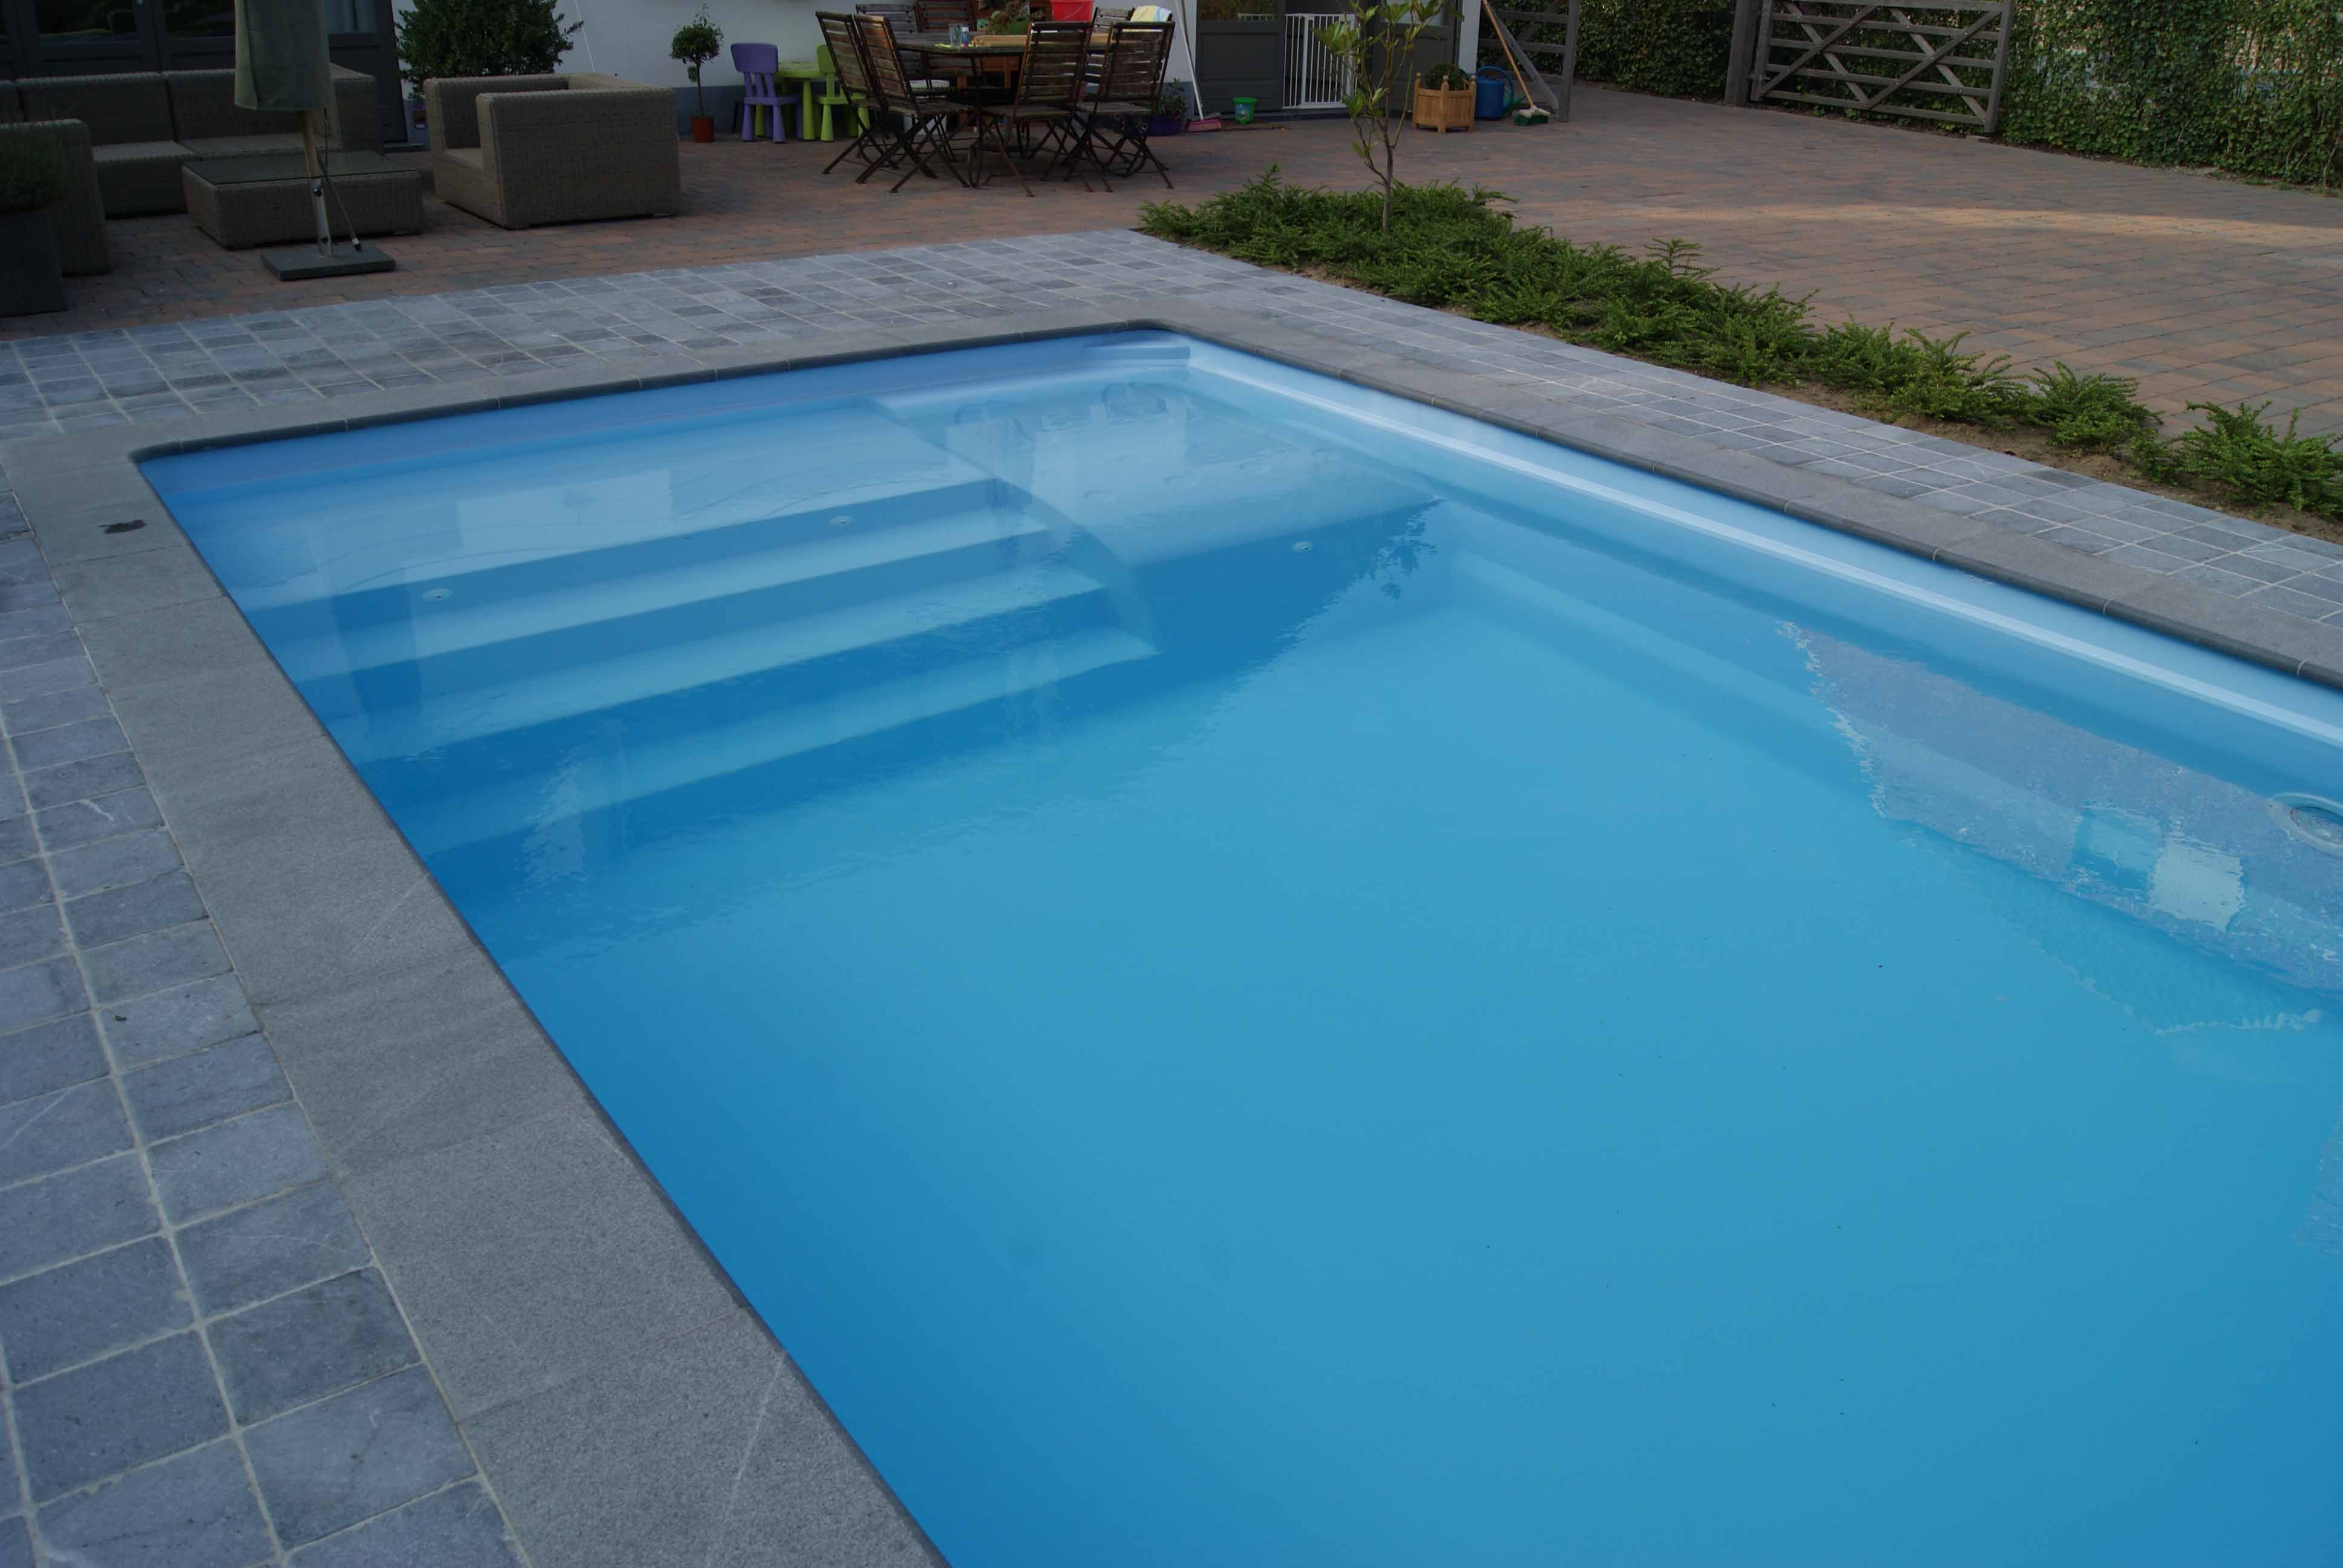 Piscine coque polyester rectangulaire mod le valence for Piscine 50 metres